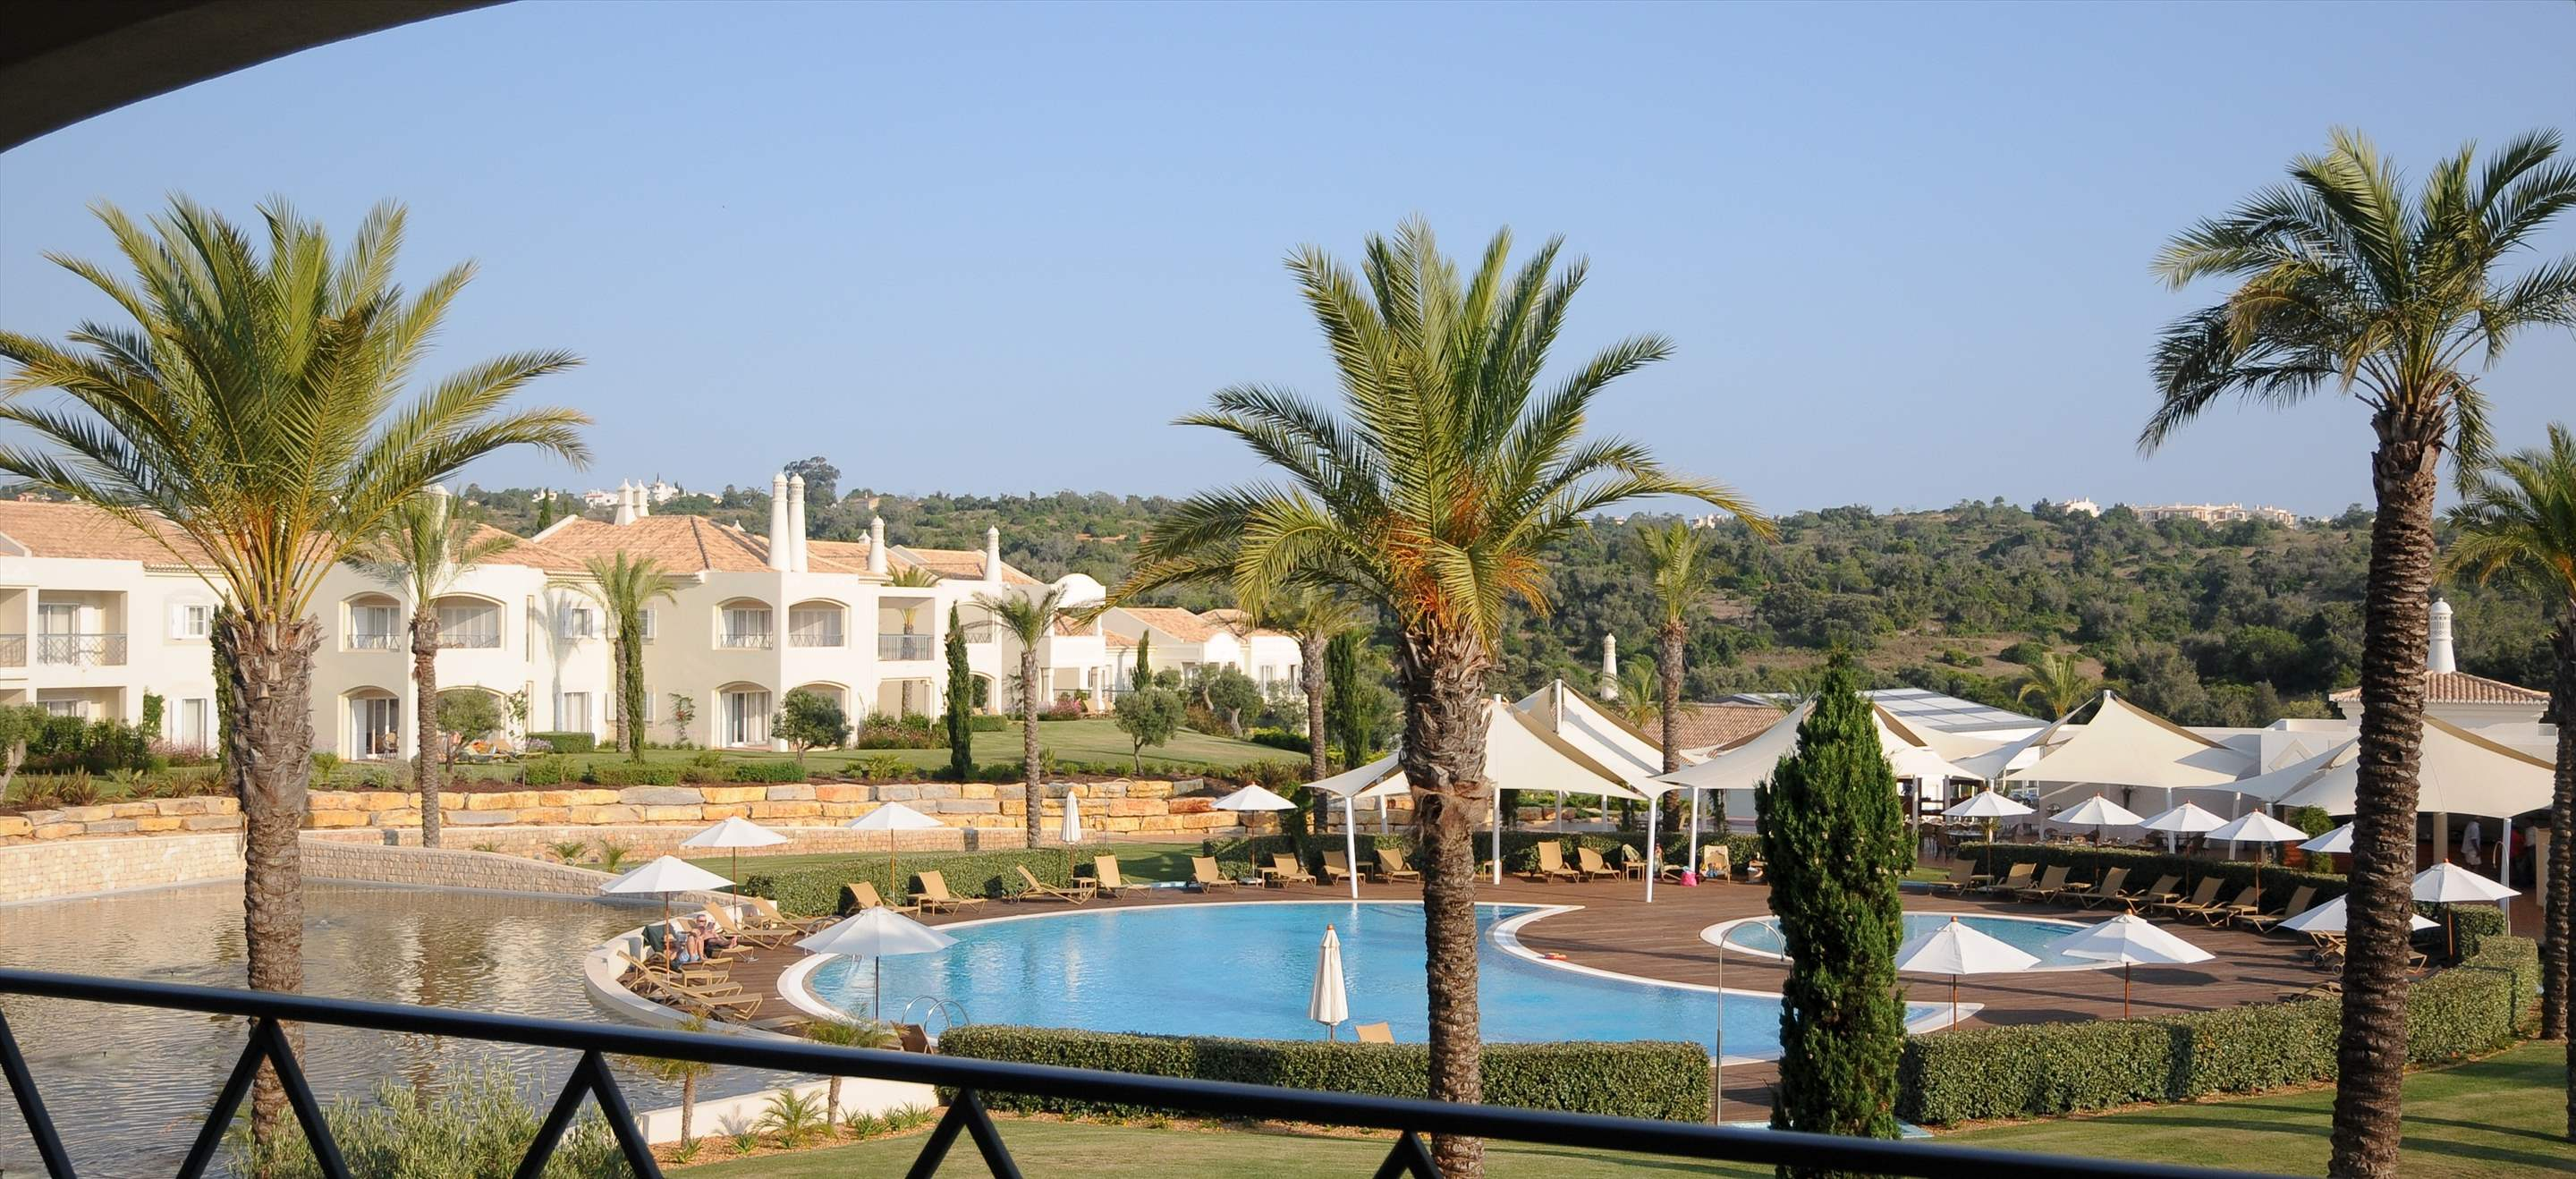 Vale d'Oliveiras 2 Bed Suite Pool View , Bed & Breakfast, 2 bedroom apartment in Vale d'Oliveiras Resort & Spa, Algarve Photo #4